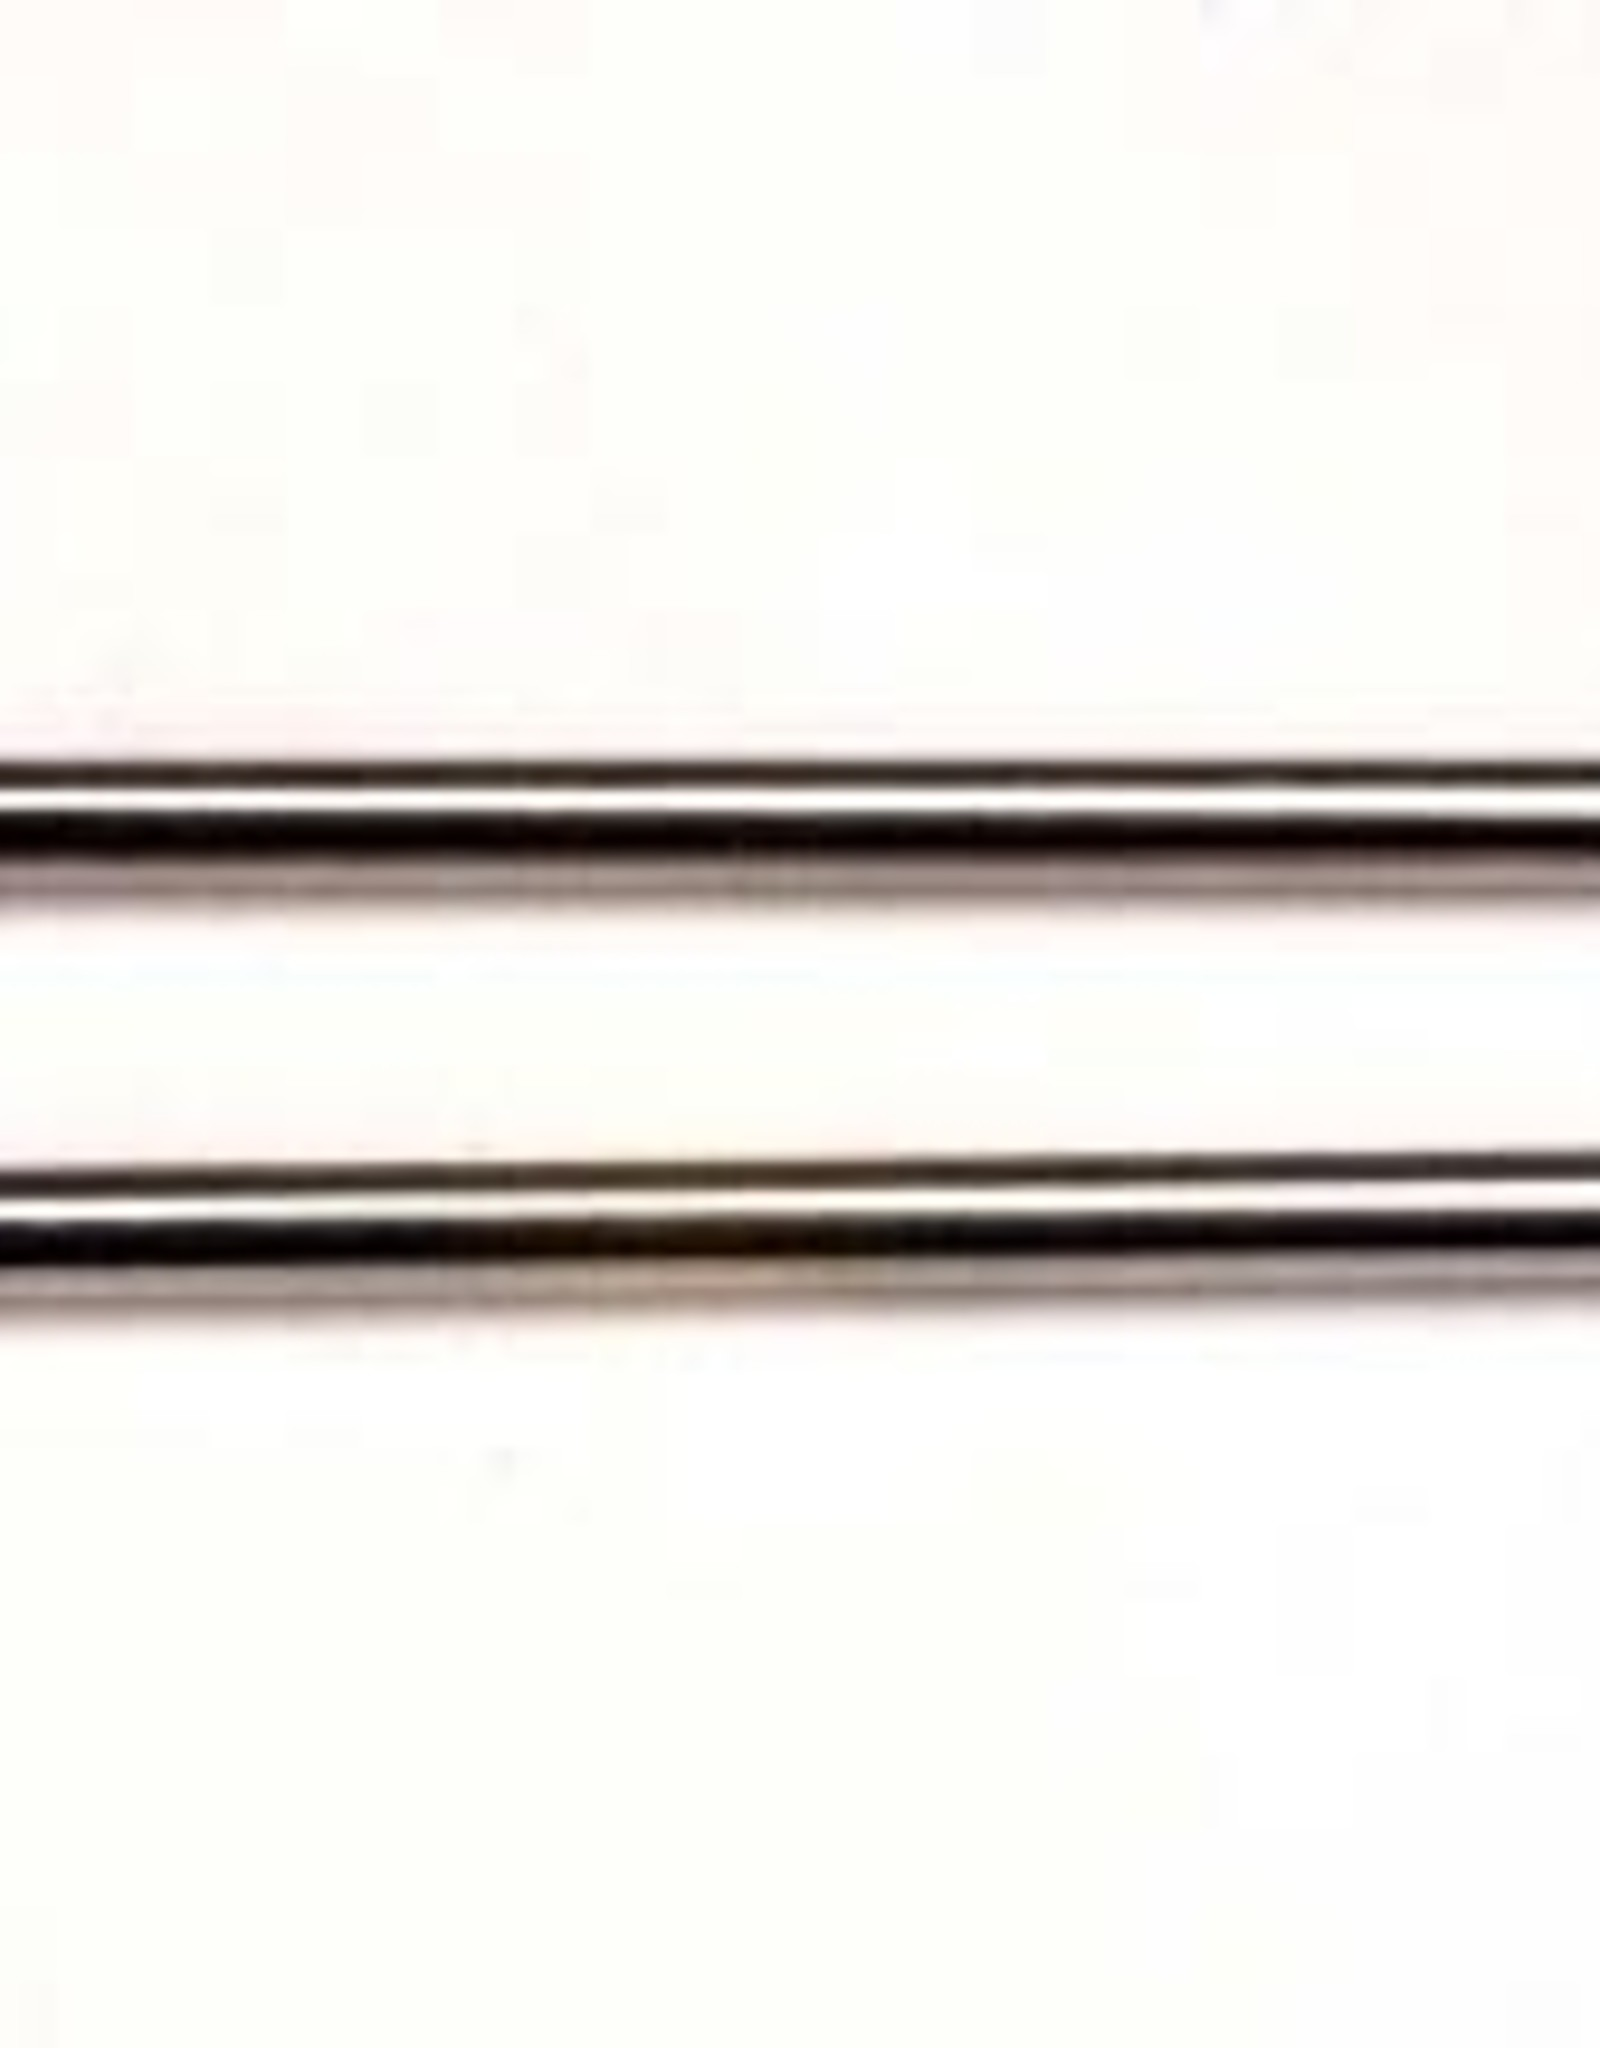 TRAXXAS SUSPENSION PINS 44MM (2)